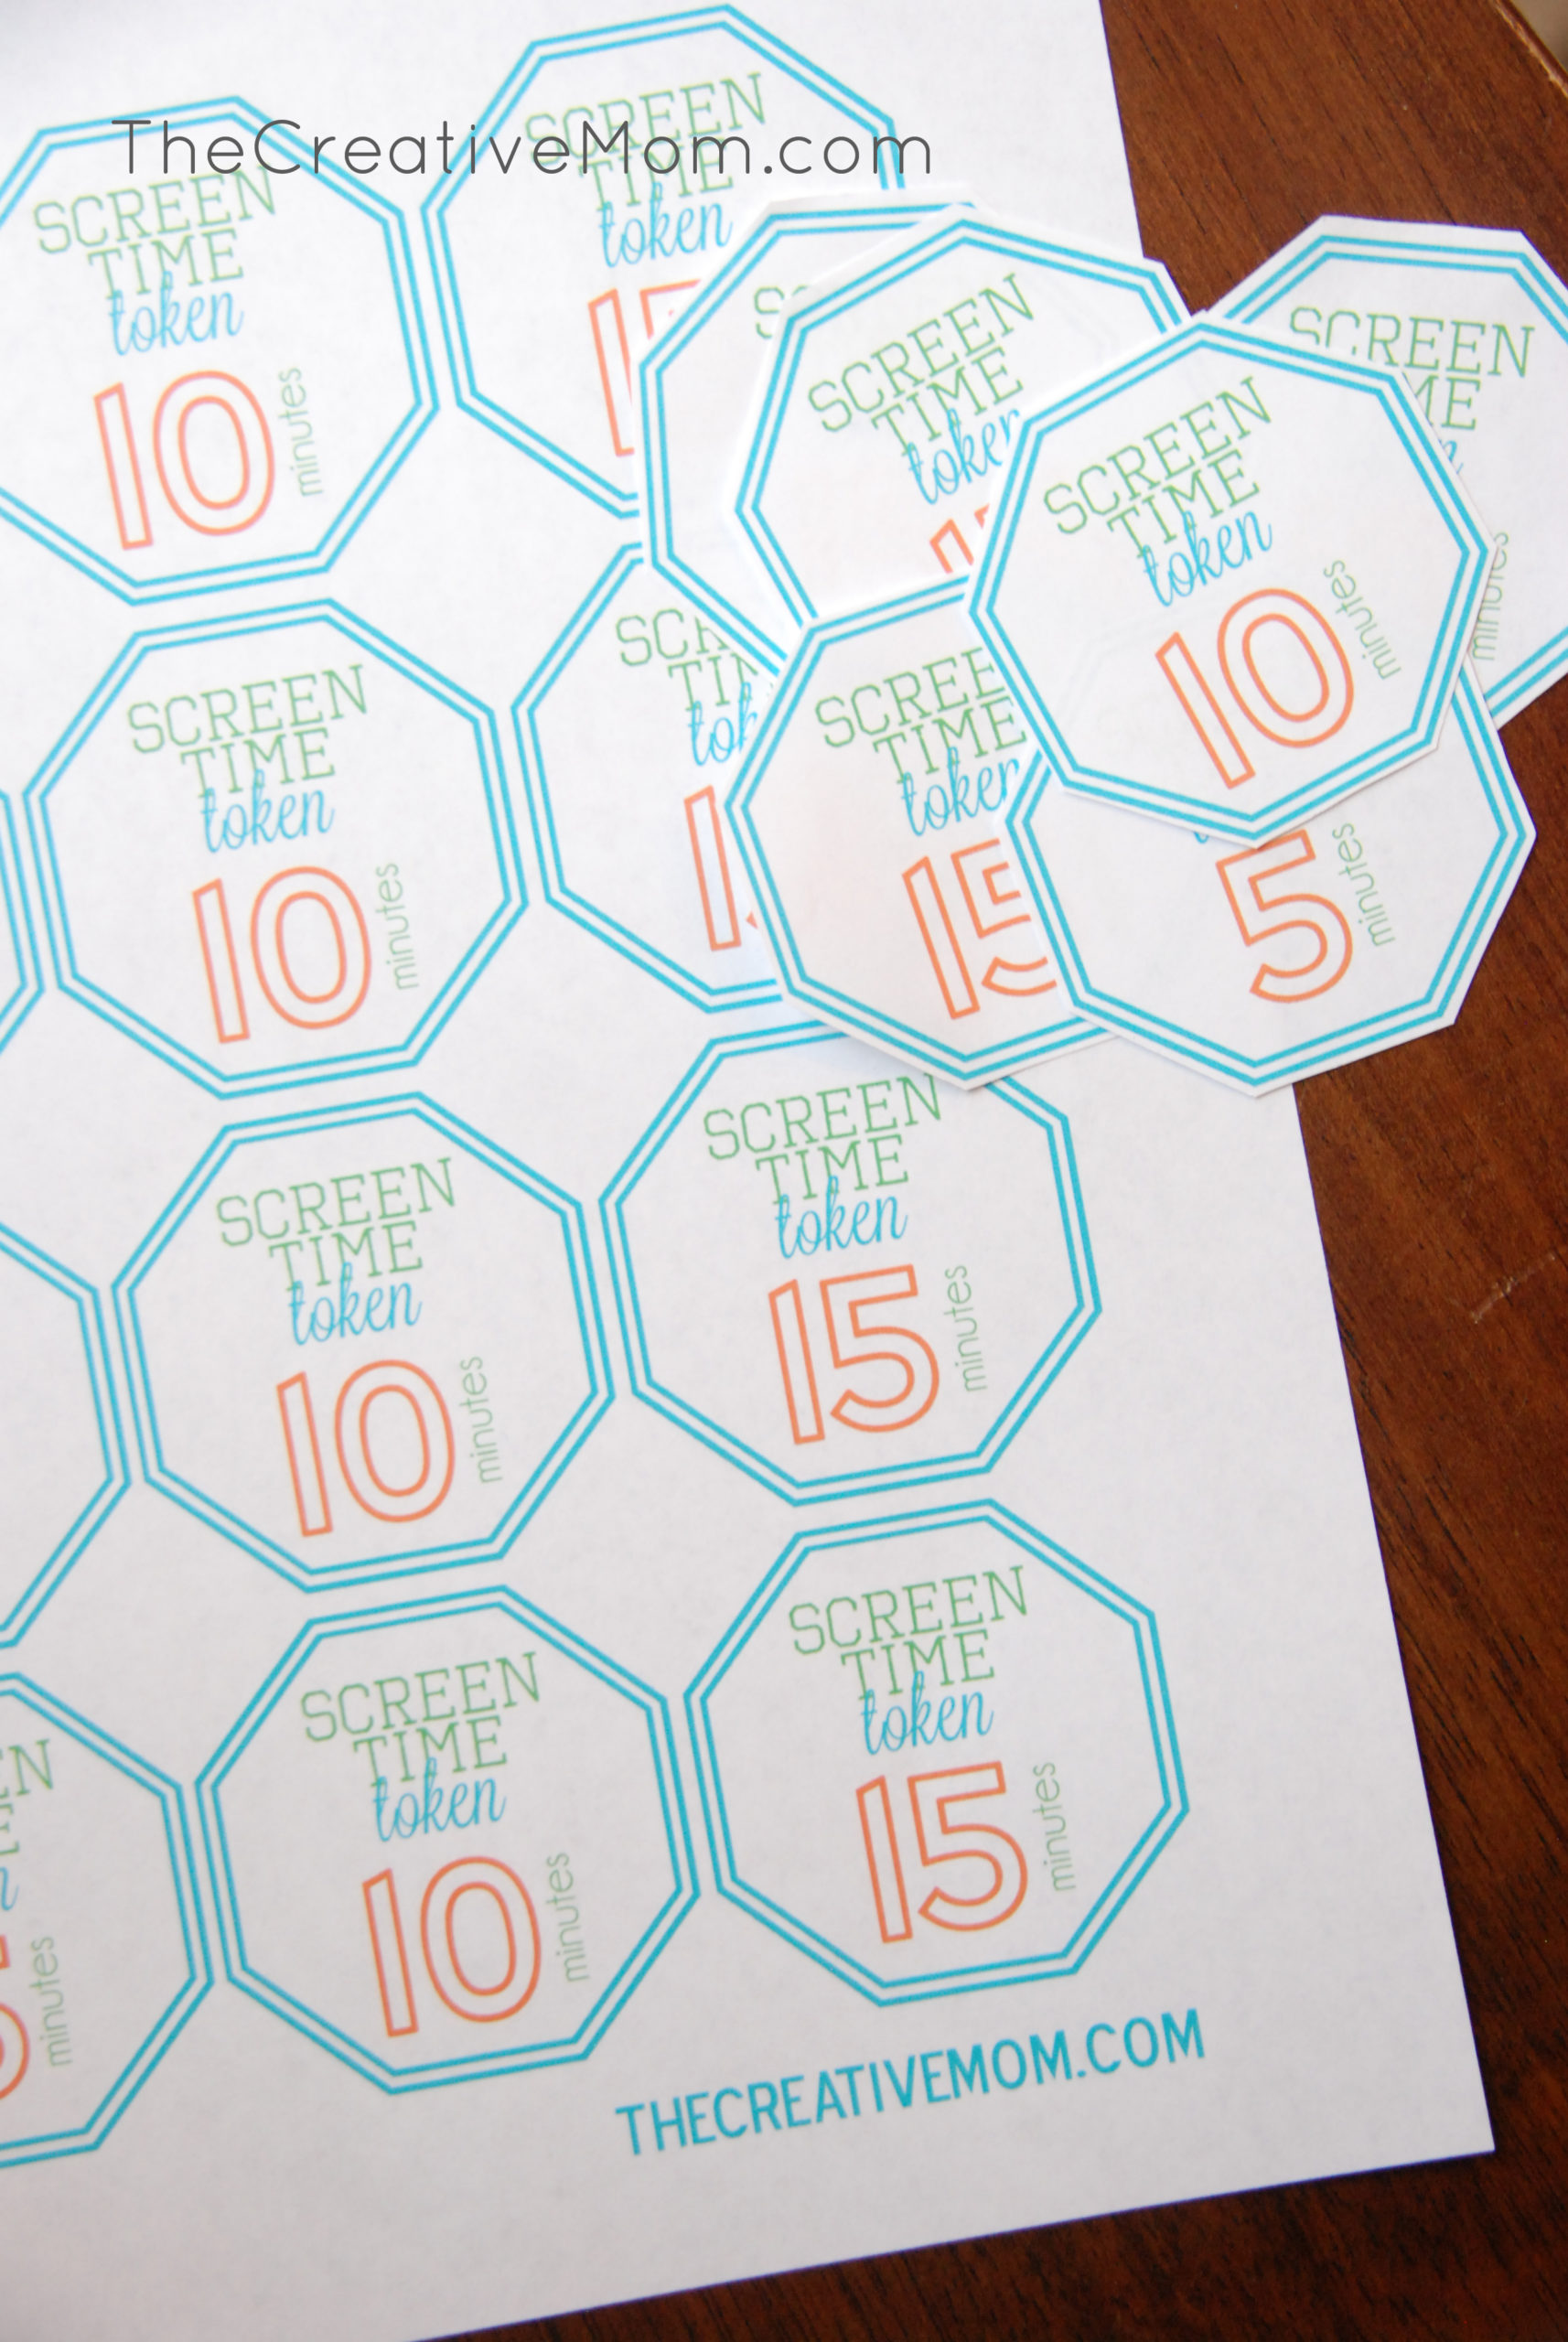 A simple way to set screen time limits (and a free printable for screen time tokens)